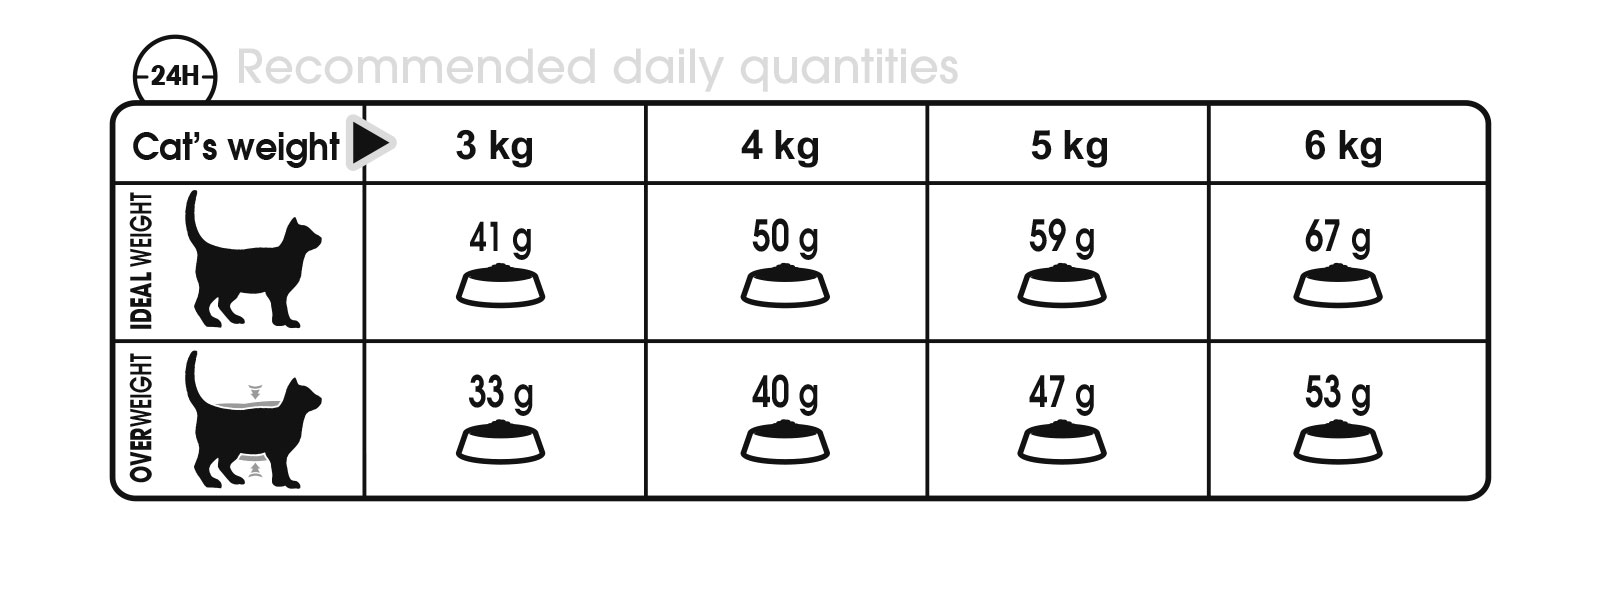 The Following Table Shows The Recommended Feeding Amount In Grams Per Day.  Ensure A Supply Of Fresh Drinking Water Is Available At All Times.